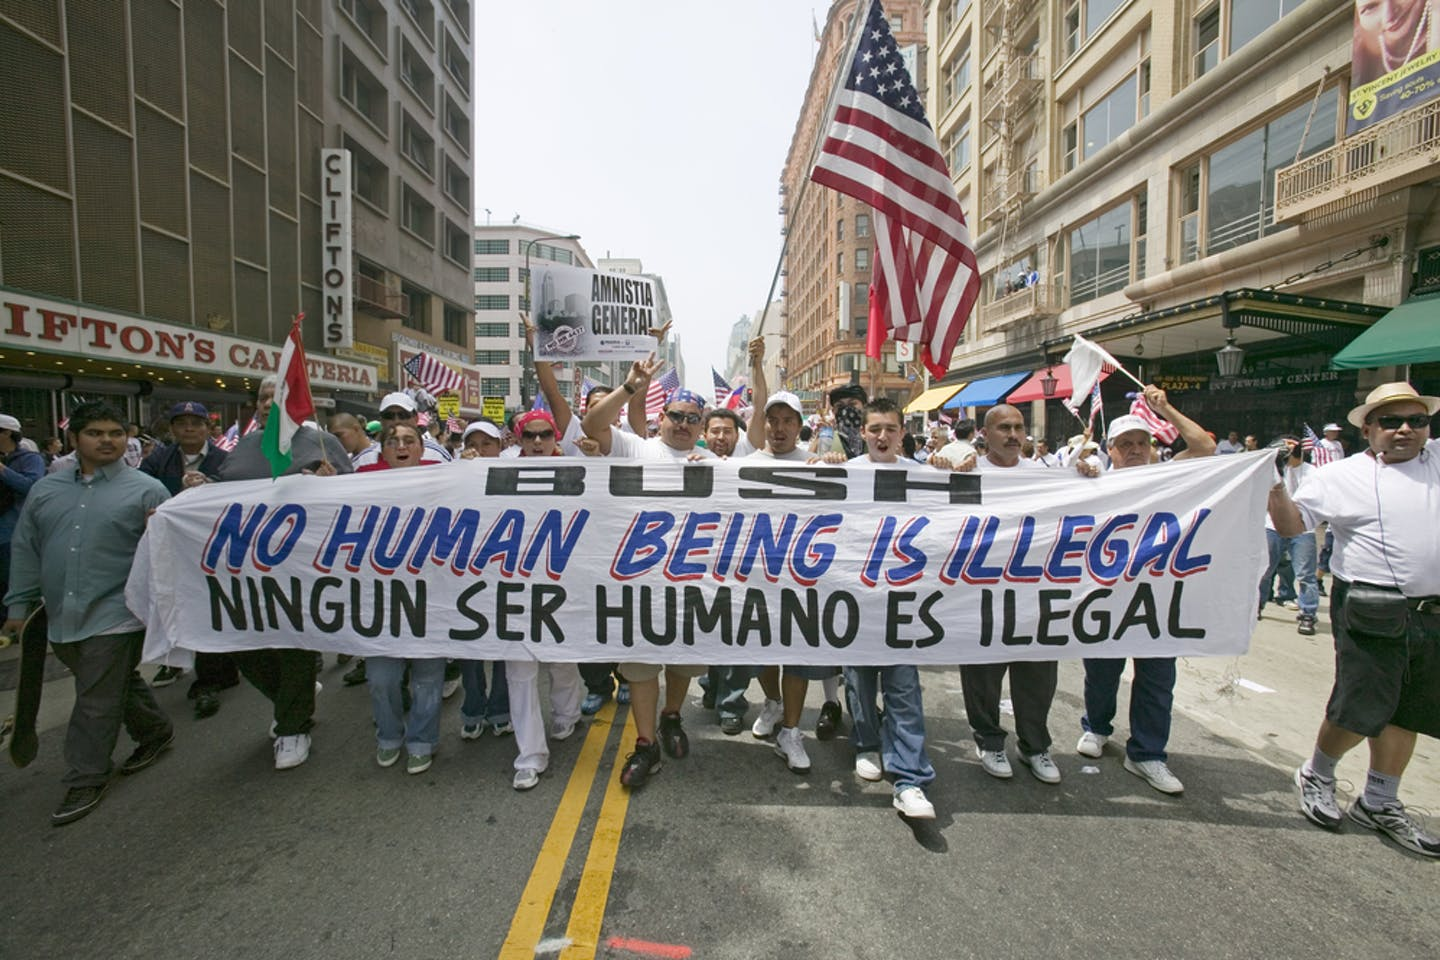 USA illegal immigration march